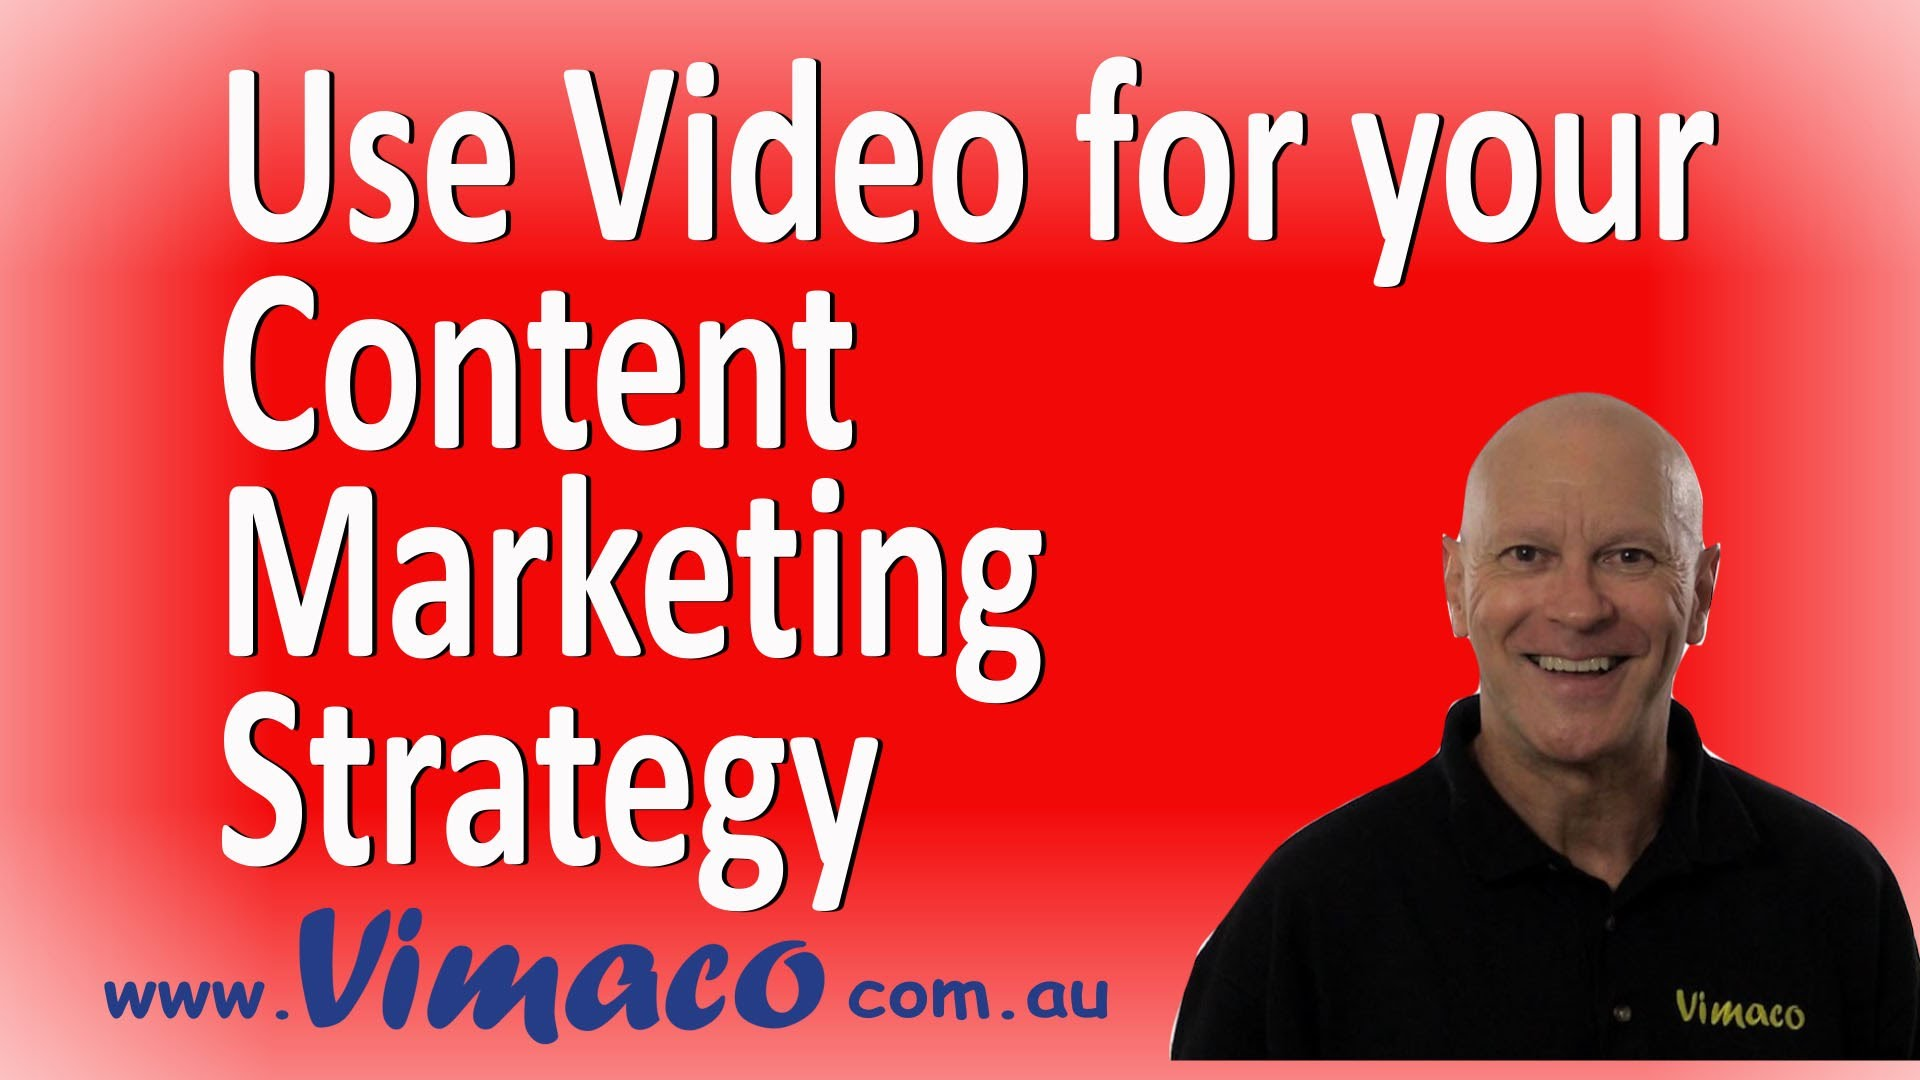 Using Video for your Content Marketing Strategy